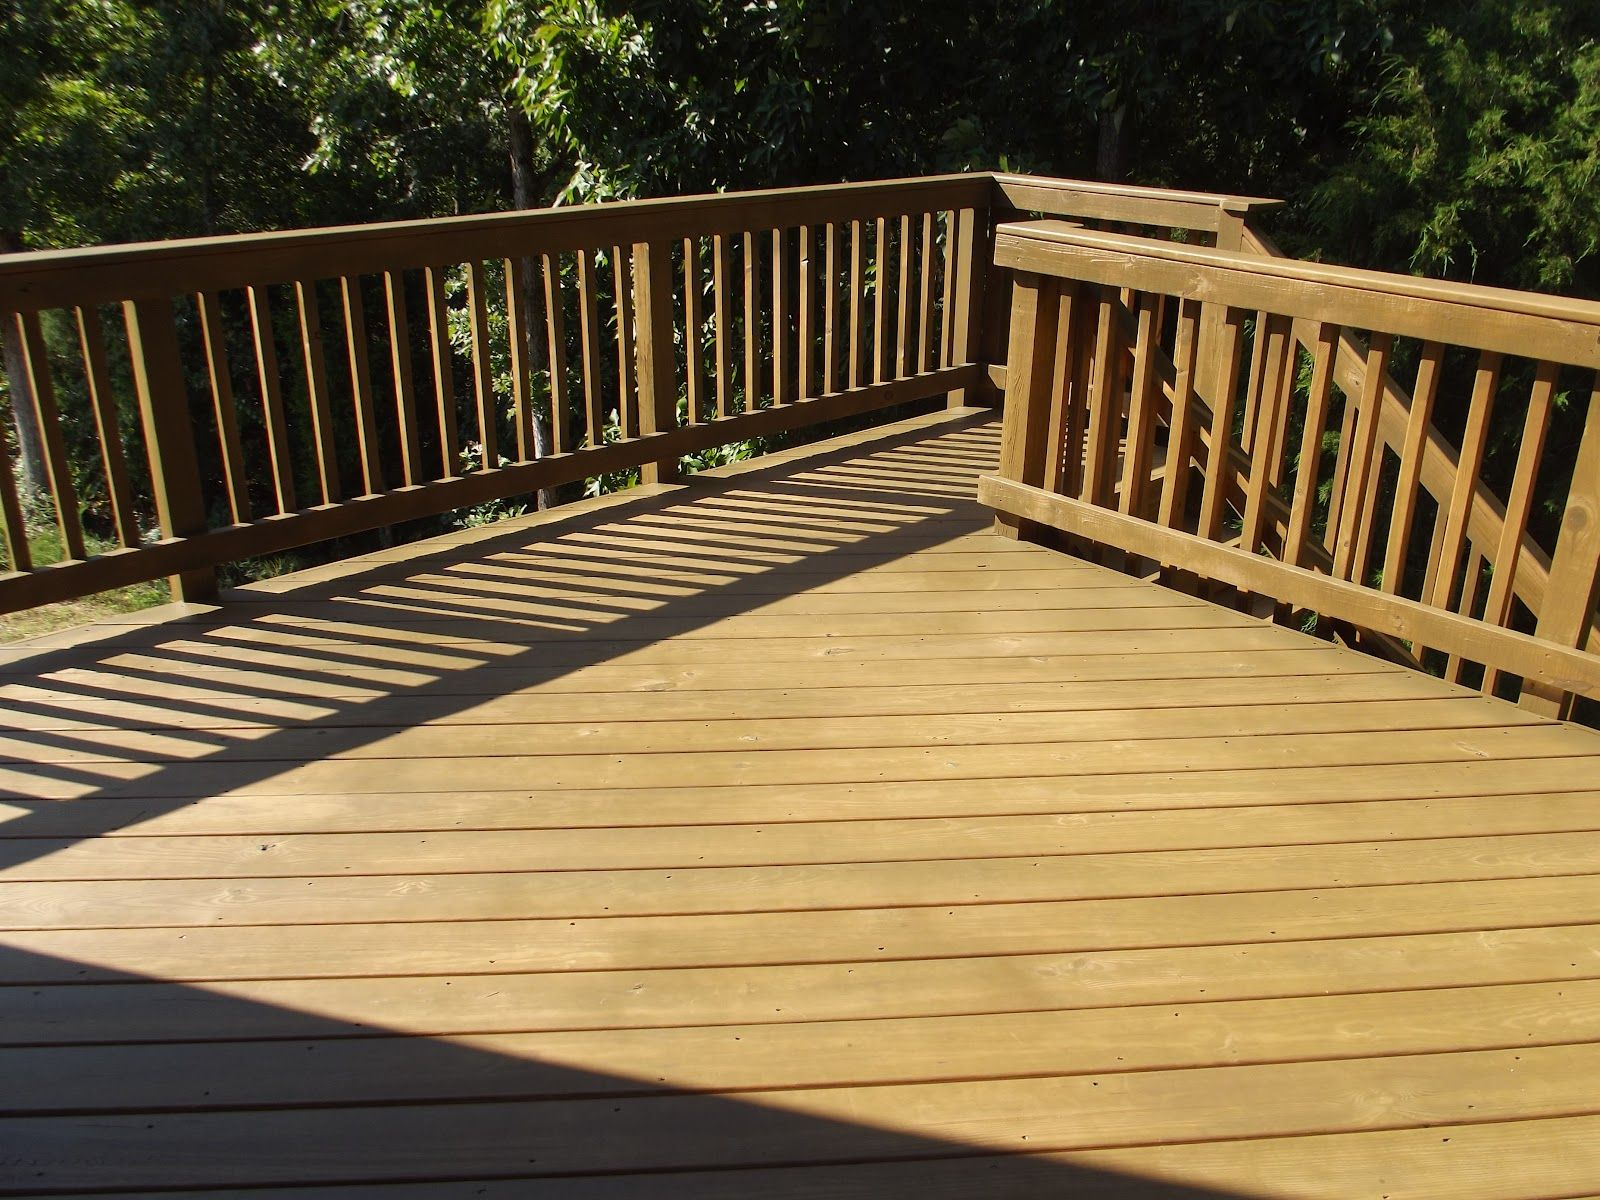 Composite Decking Rotherham Material For Deck That Looks Like Wood Decking Plans At Wickes Staining Deck Deck Stain Colors Deck Colors